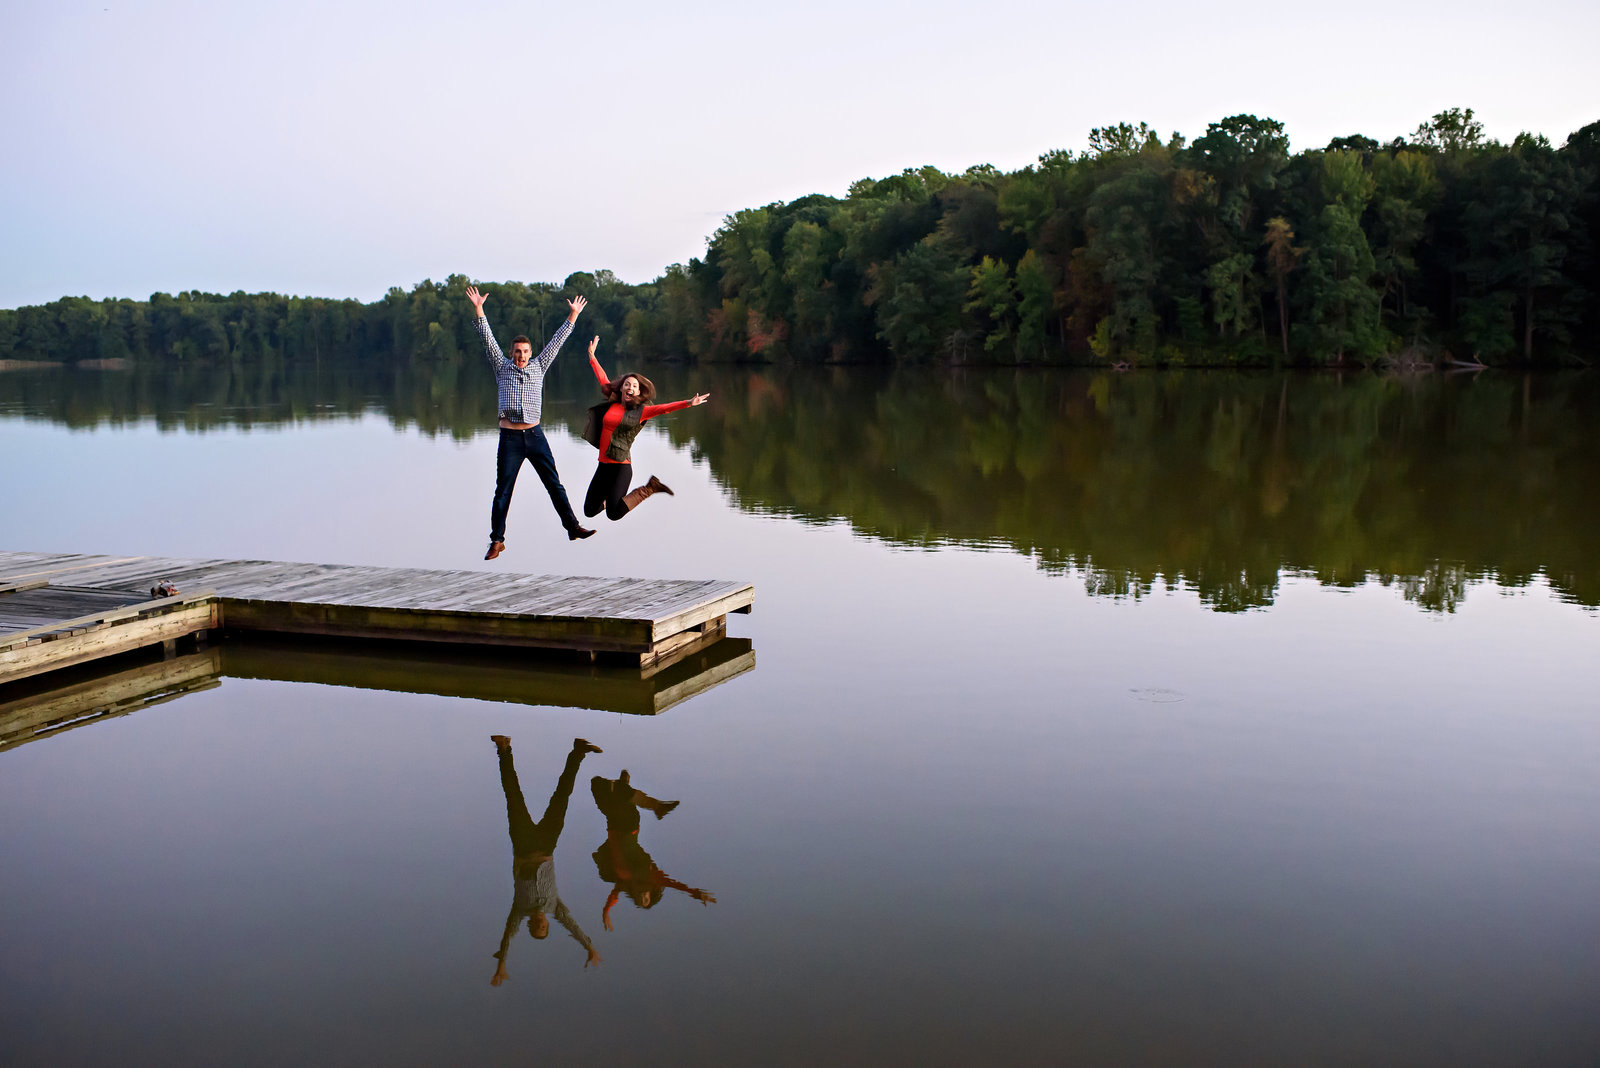 An engaged couple jump at the end of a dock on a lake.